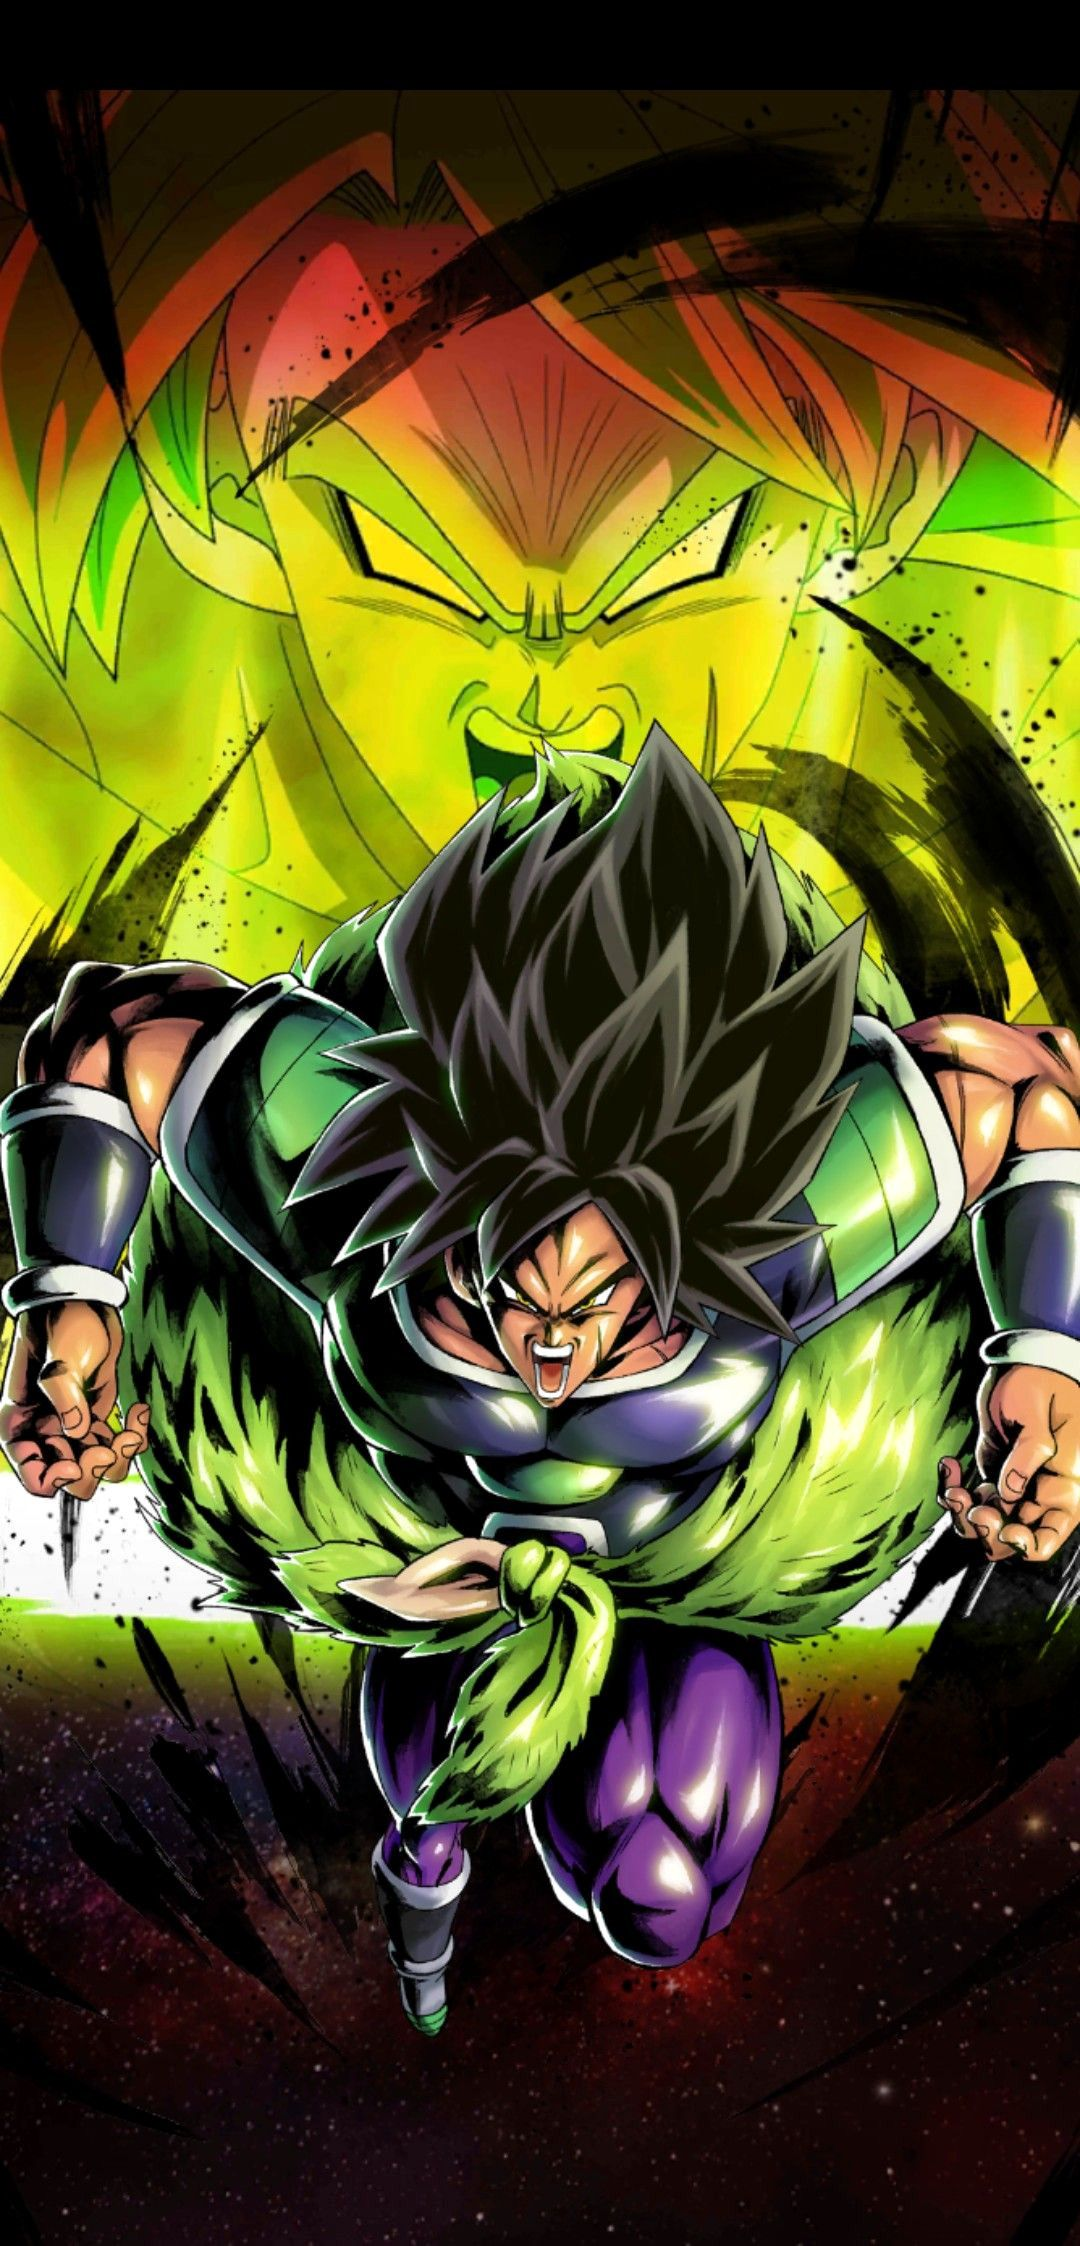 Beautiful Broly Flying Vs On Wallpaper Mobile wallpaper